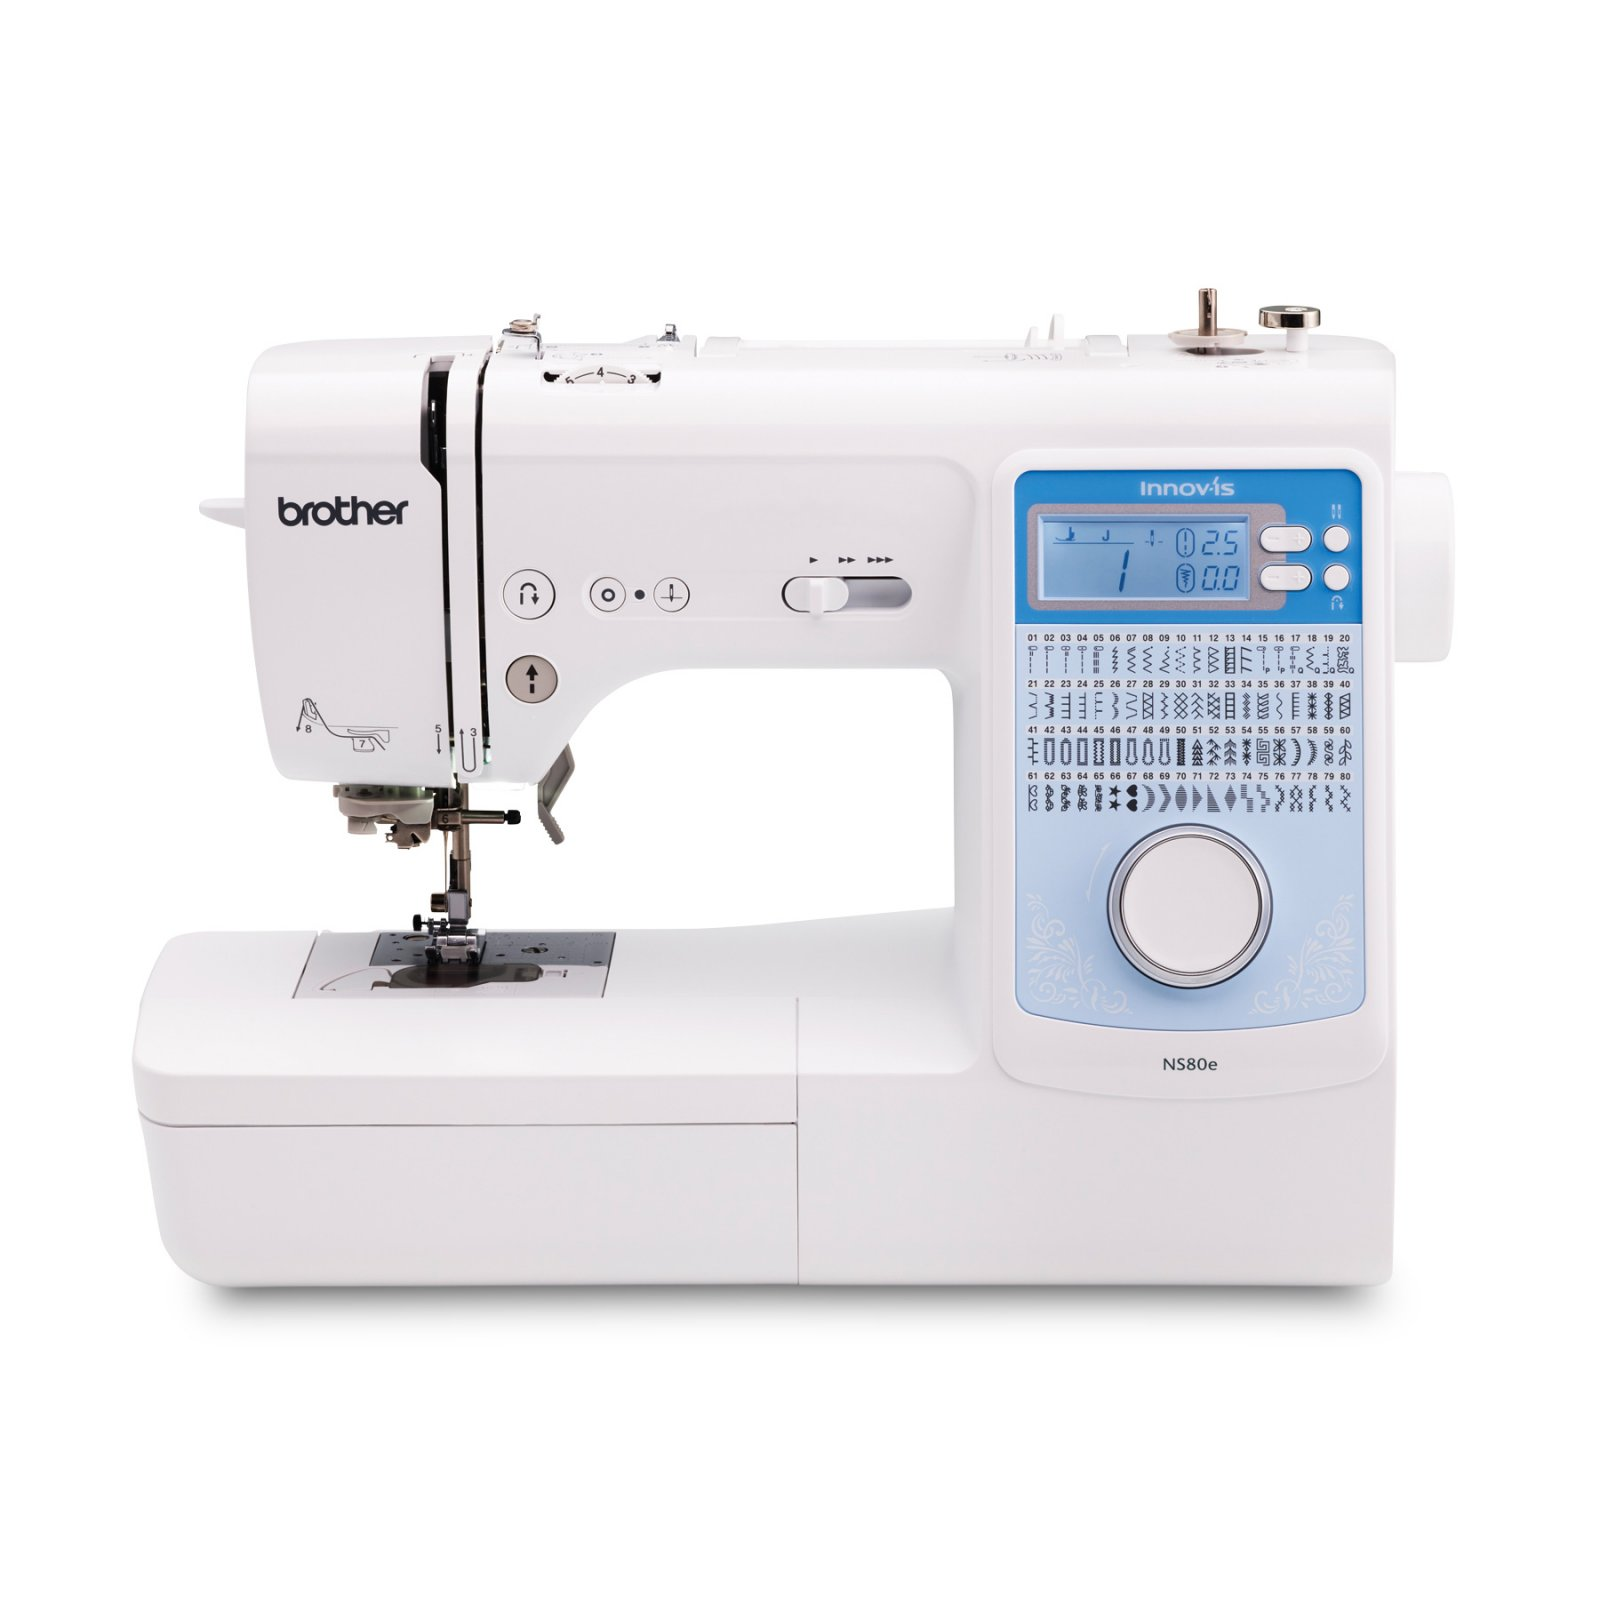 Brother - Design Star 2 NS80e Sewing Machine